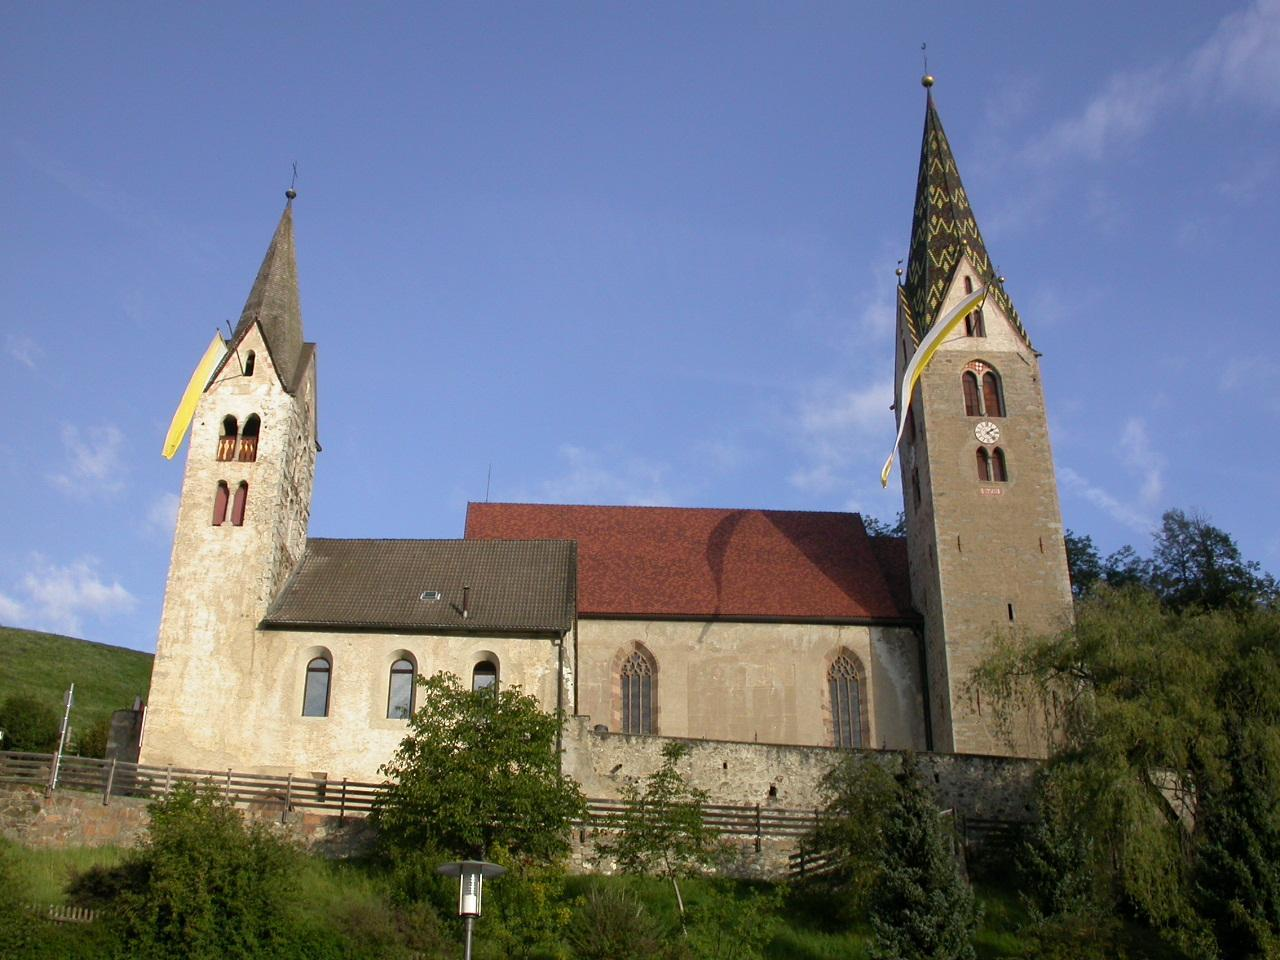 St. Michaelskirche am Friedhof in Villanders